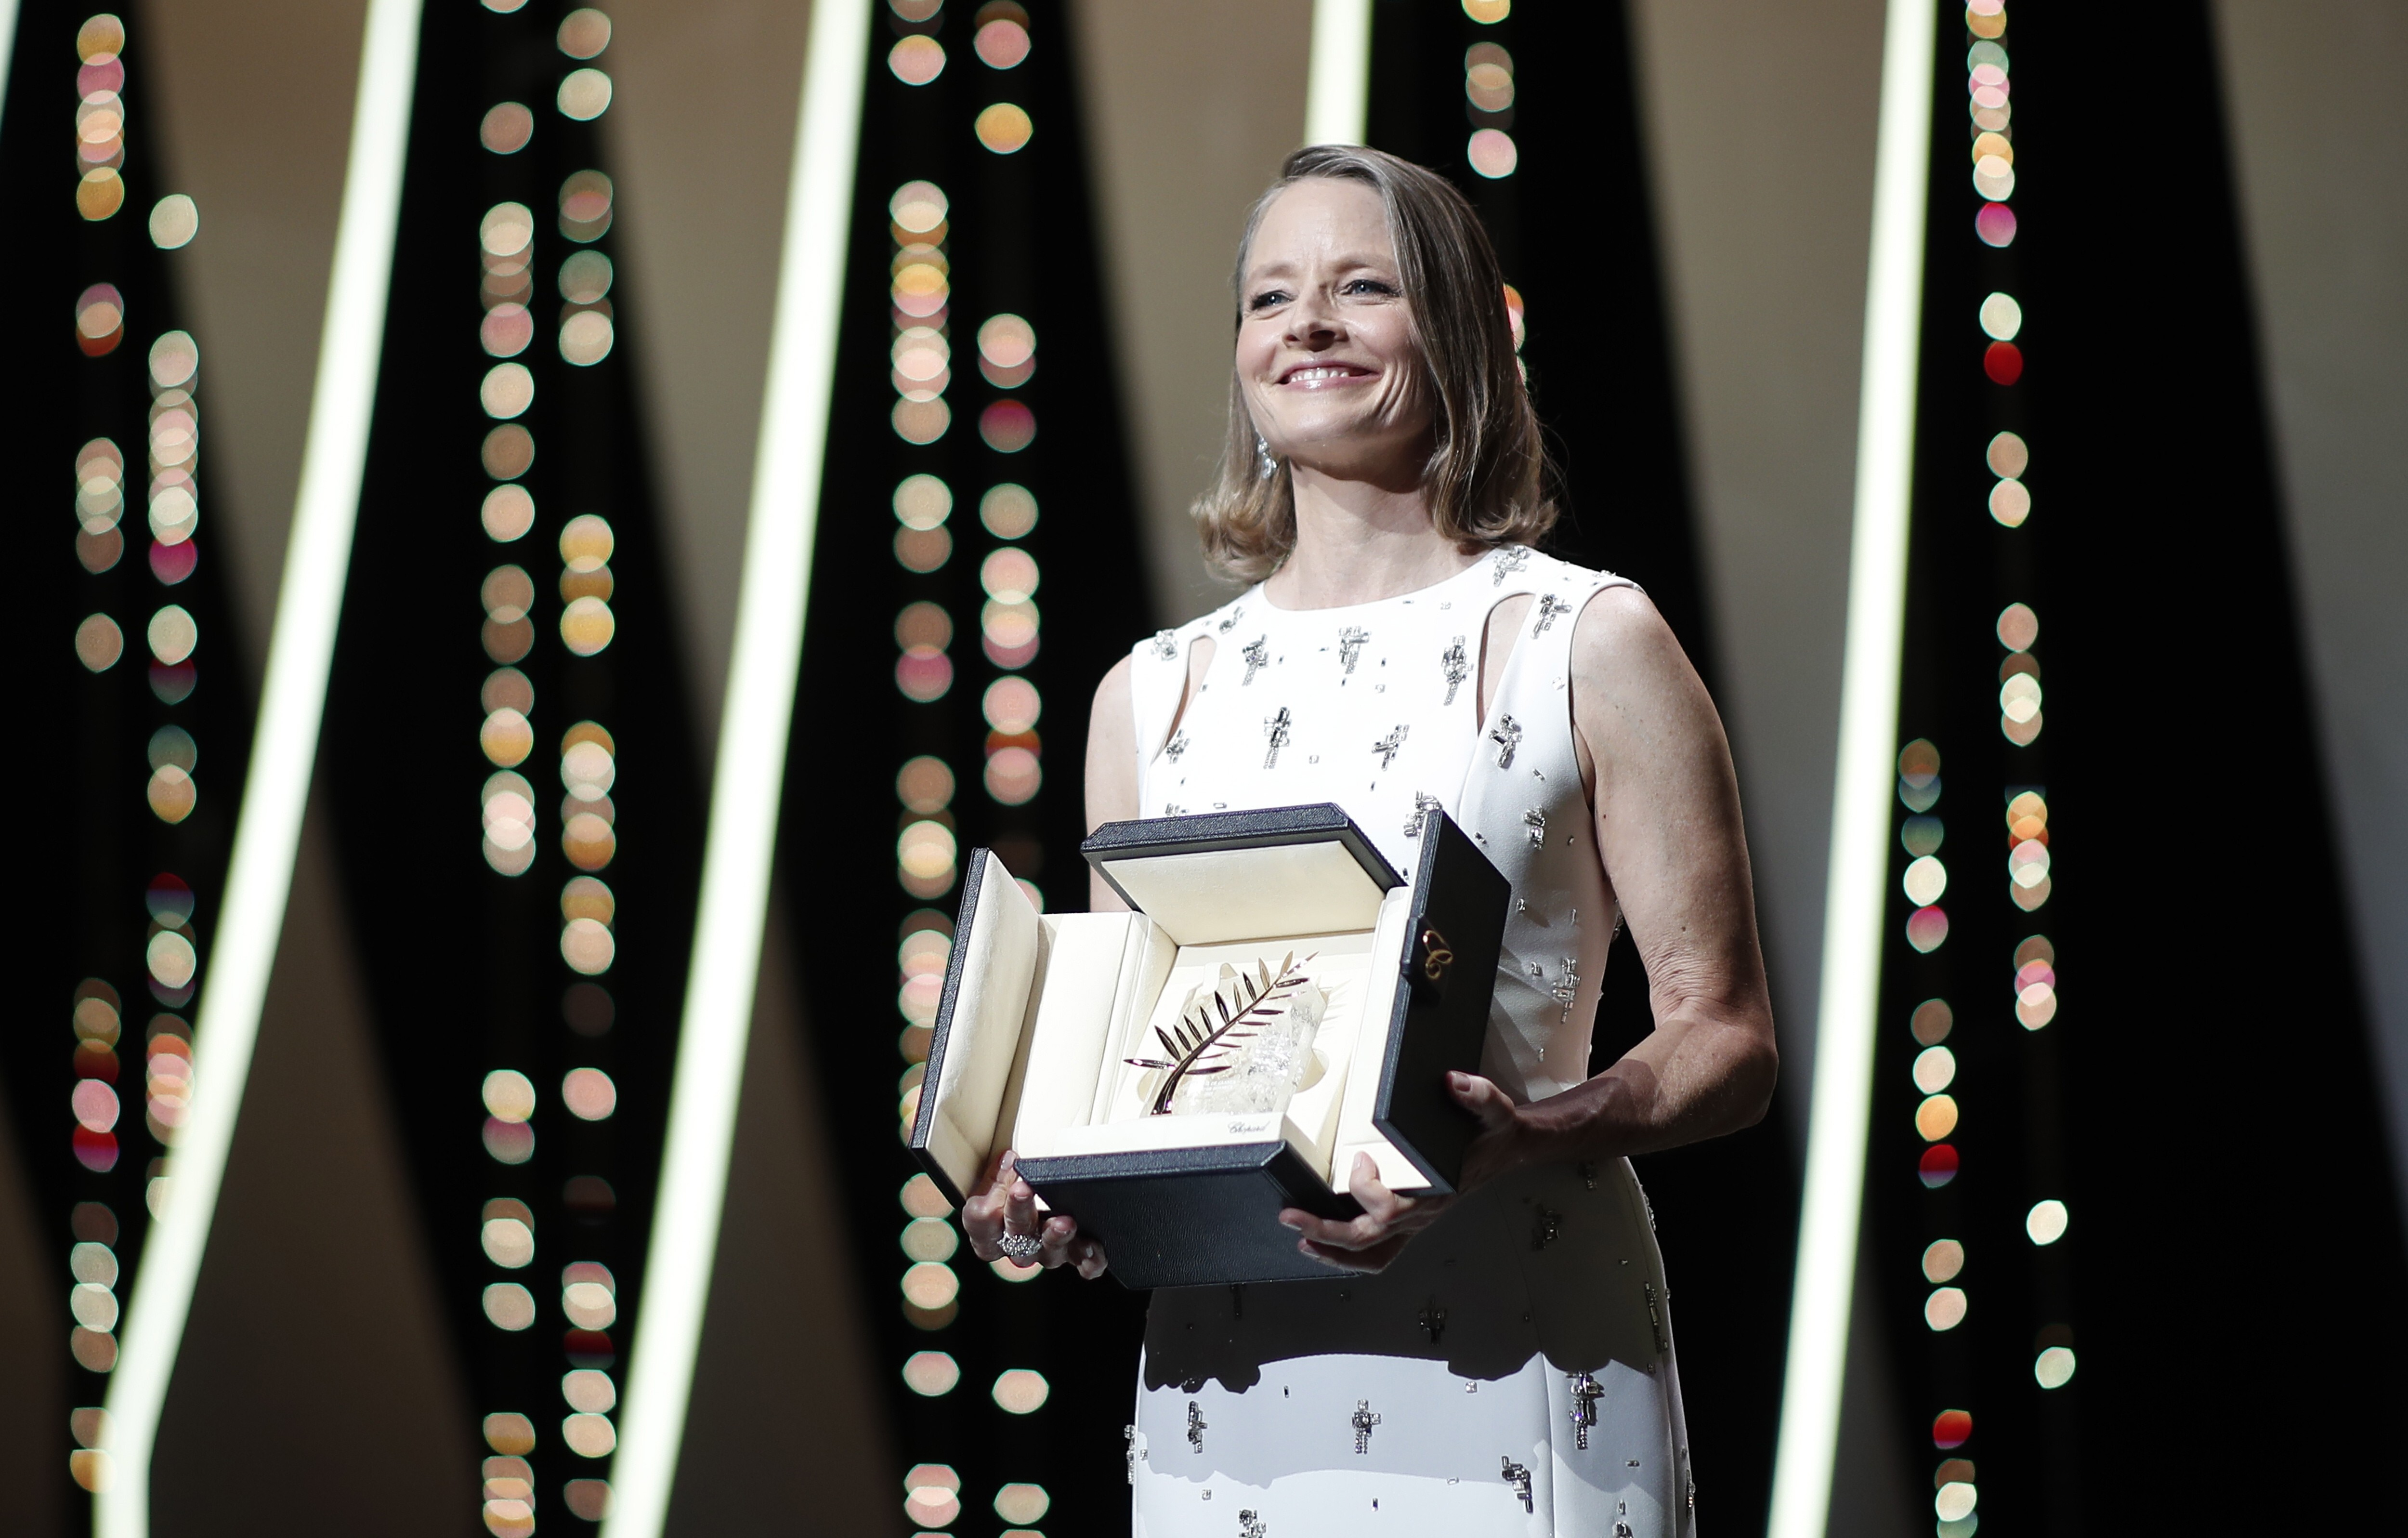 Jodie Foster wins the honorary Palme d'Or at the Festival de Cannes opening ceremony